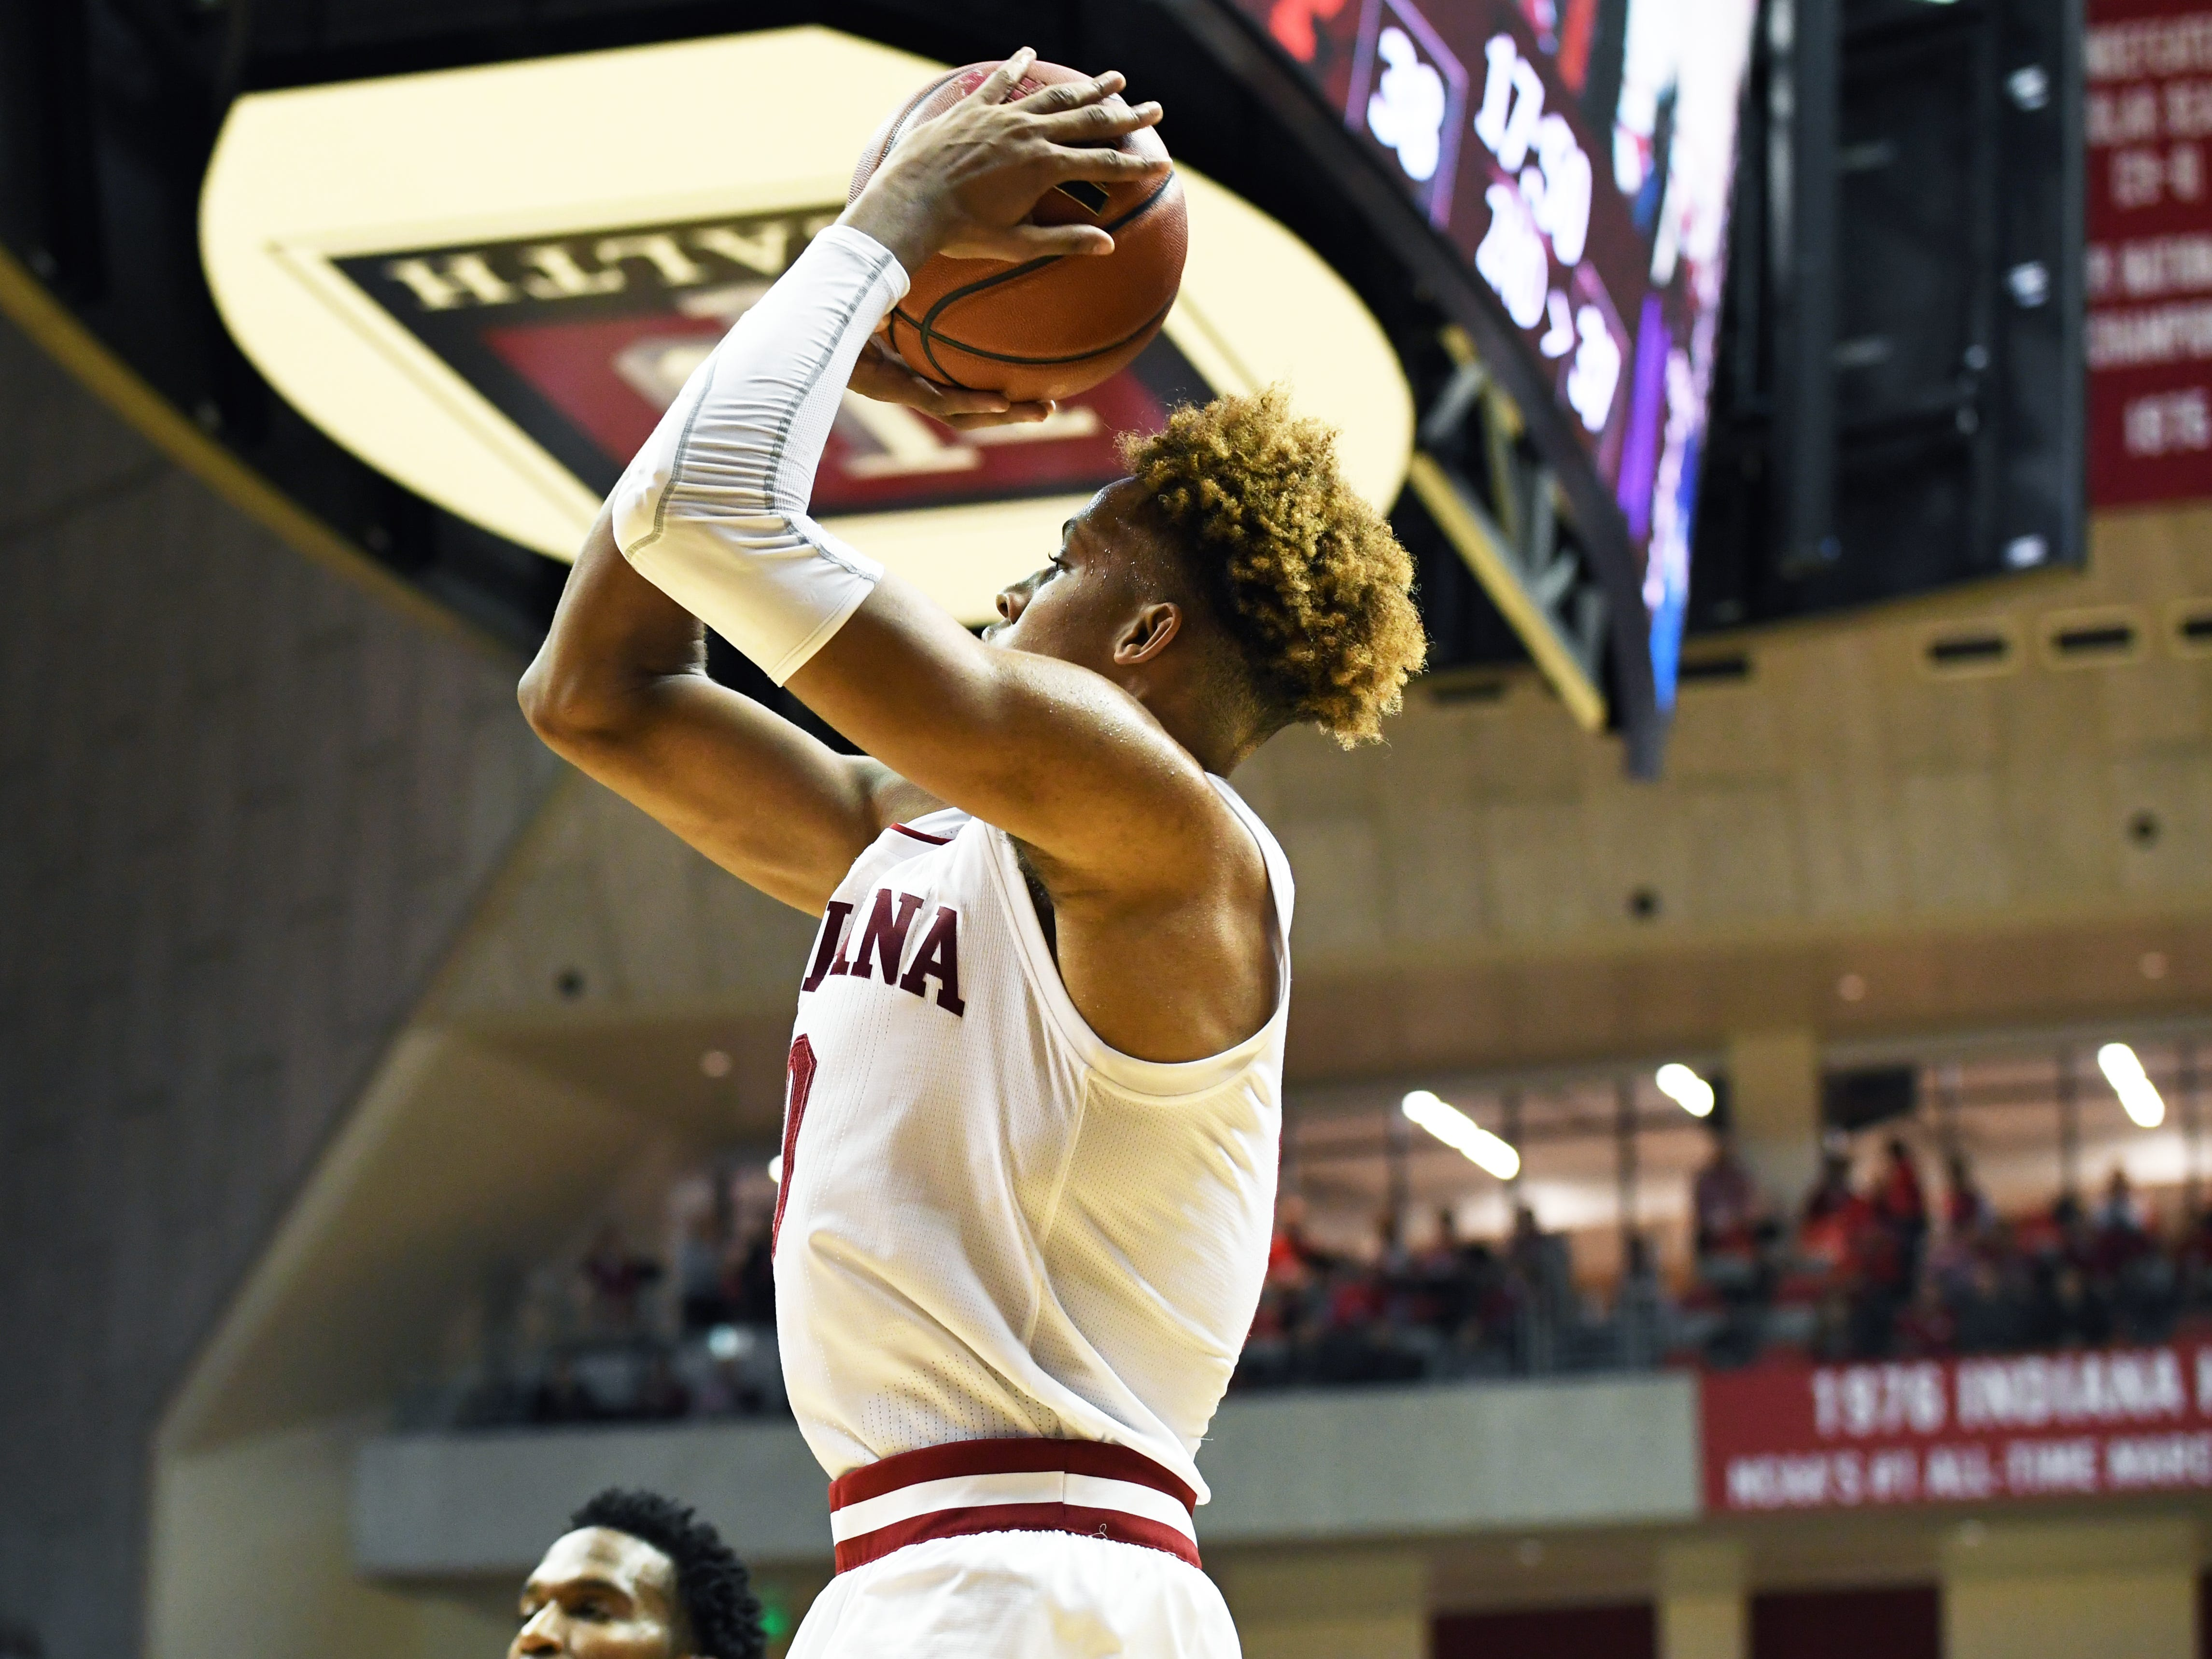 Indiana Hoosiers guard Romeo Langford (0) shoots the ball during the game against Northwestern at Simon Skjodt Assembly Hall in Bloomington, Ind., on Saturday, Dec. 1, 2018.